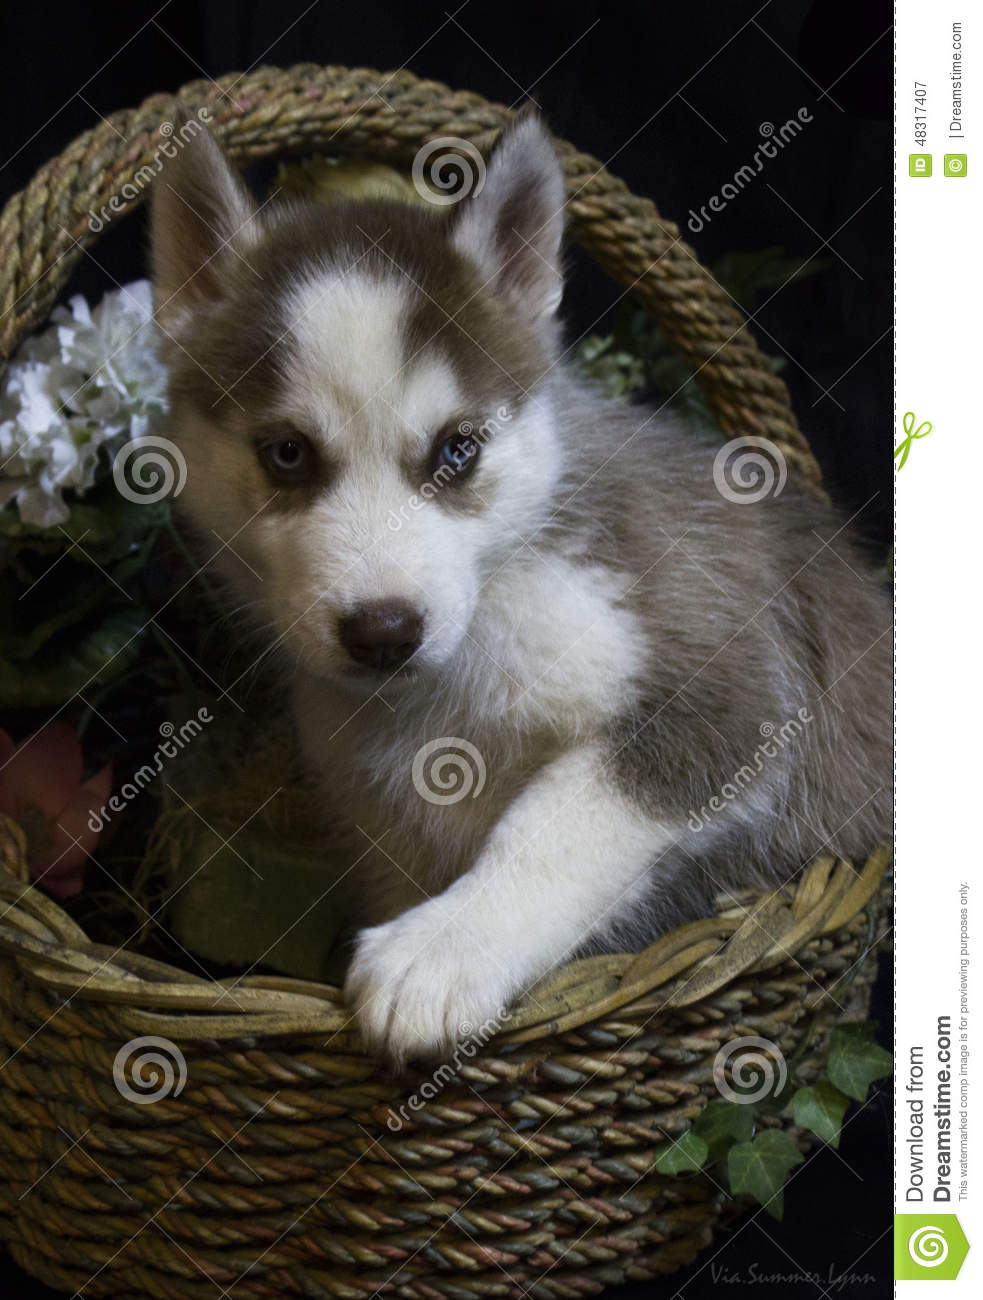 Husky Puppy In A Flower Basket Stock Image - Image of farm